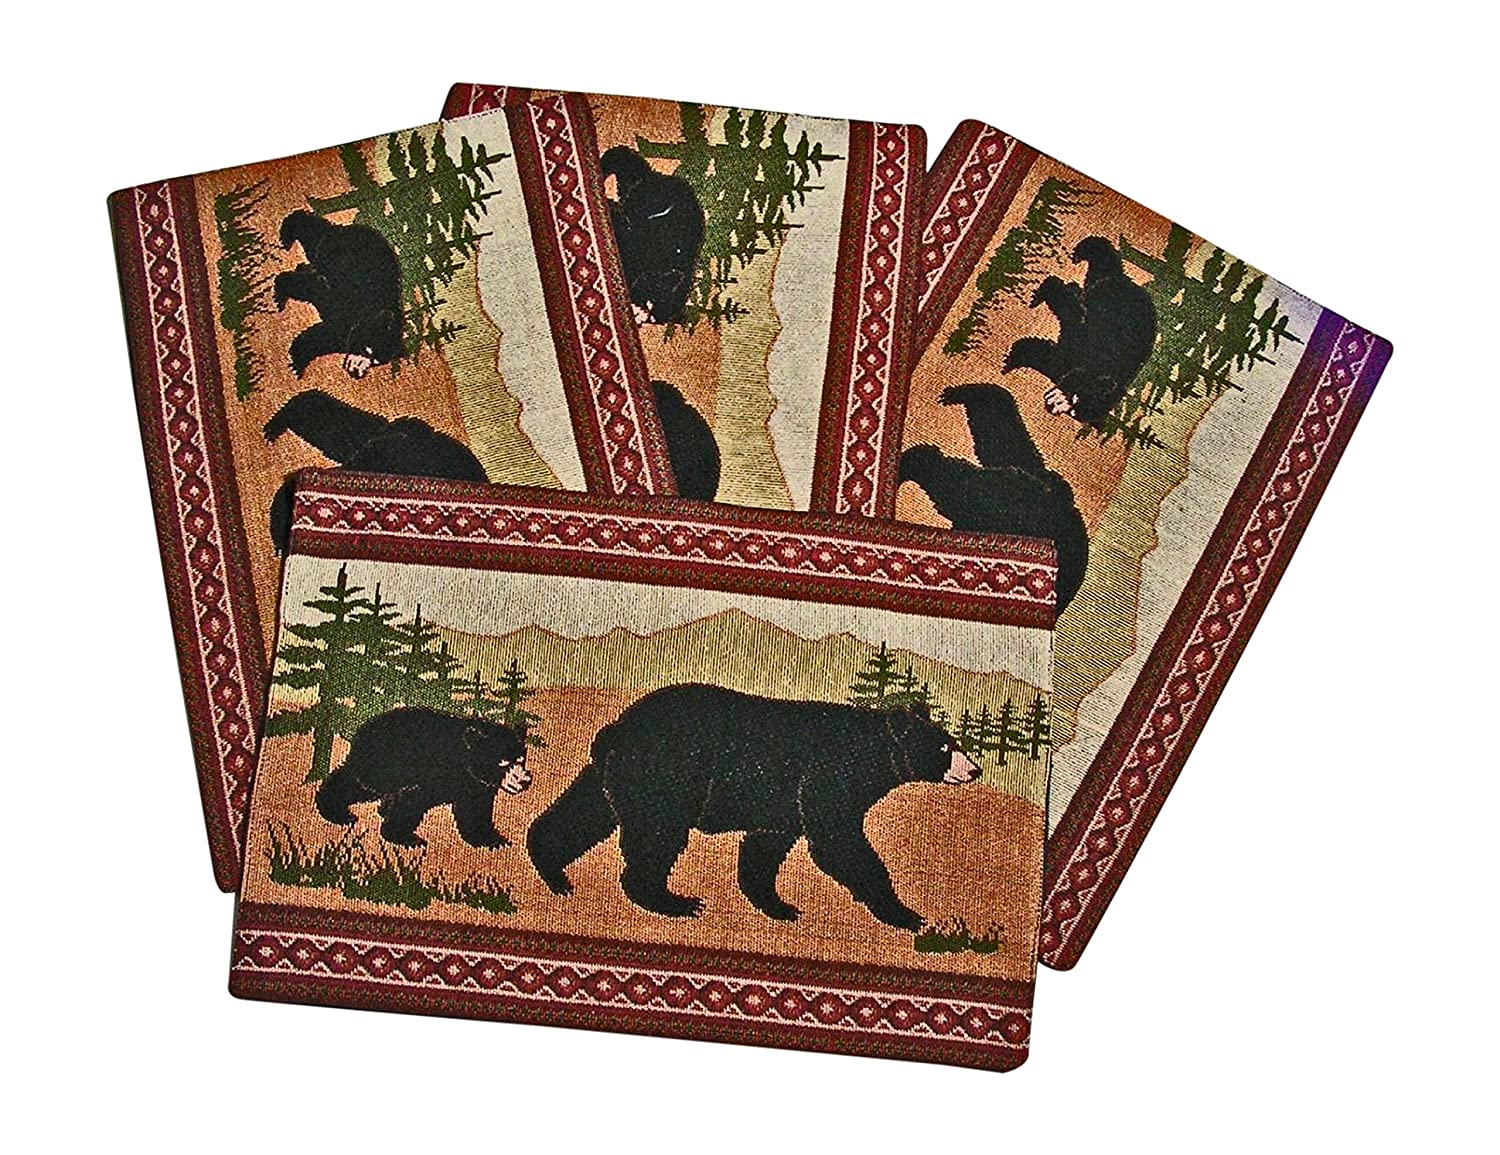 Black Bear Southwestern Design Placemats, Set of 4, 13x19 inches